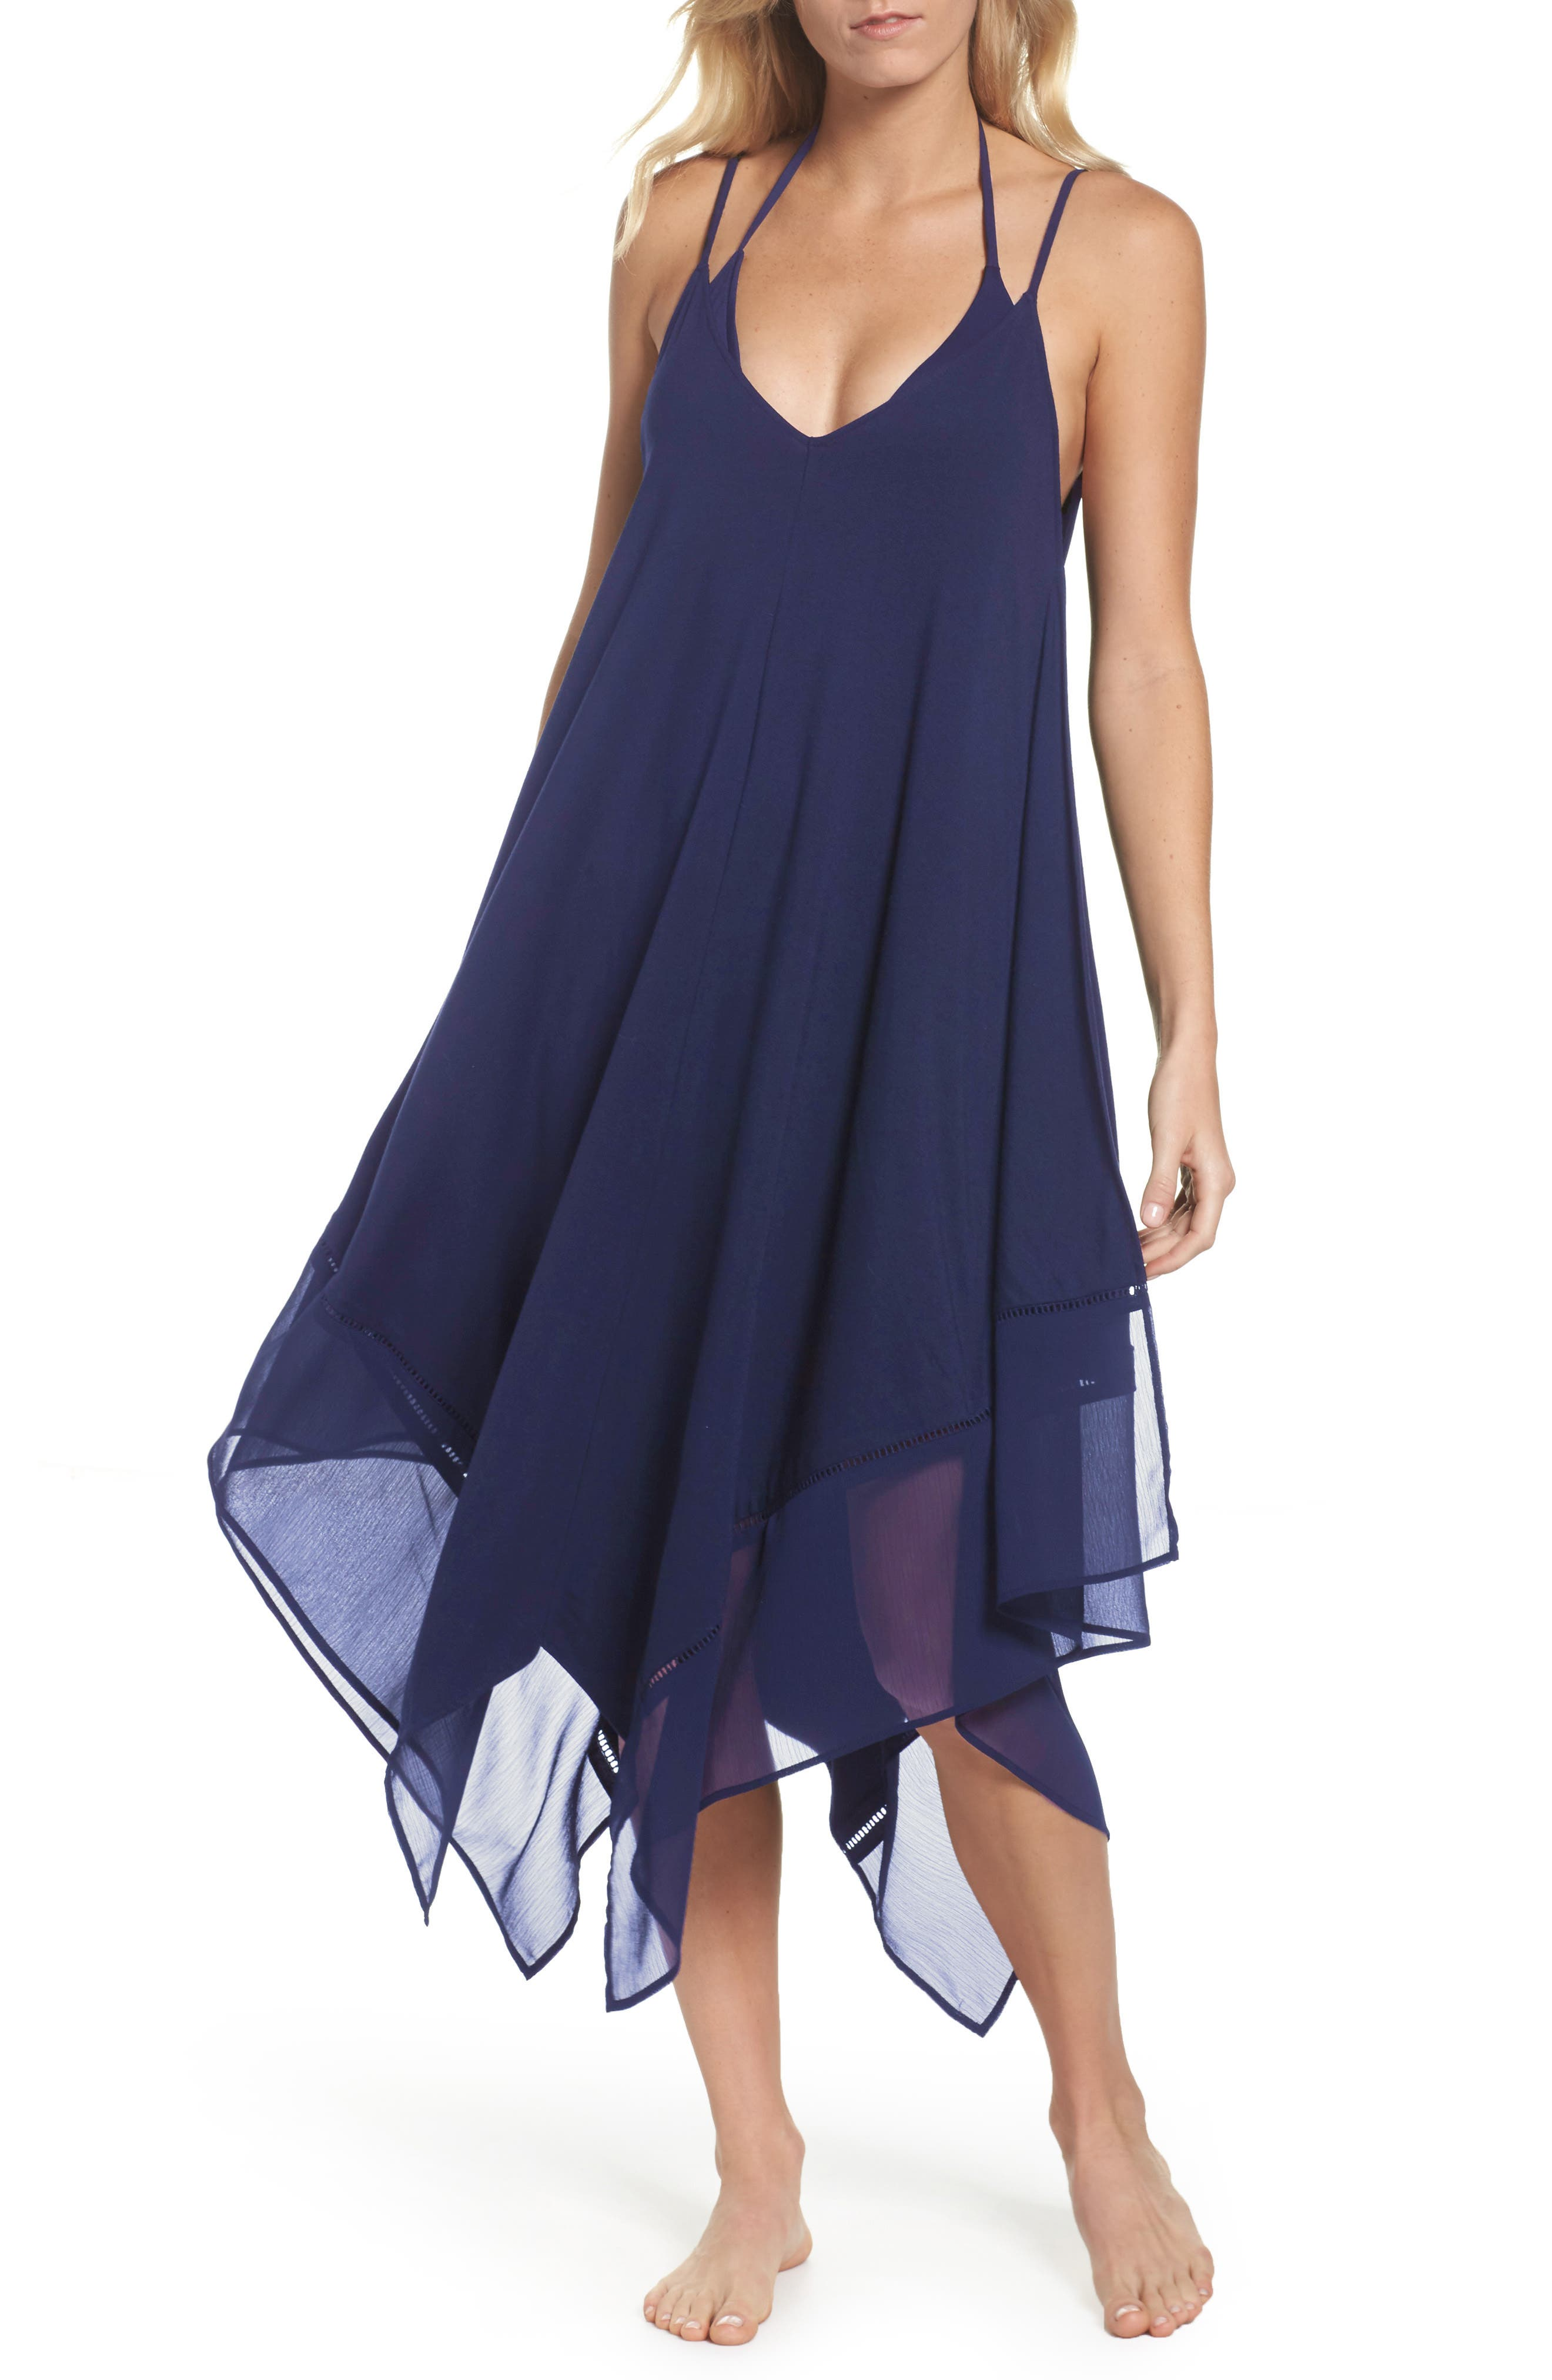 Alternate Image 1 Selected - Tommy Bahama Cover-Up Scarf Dress